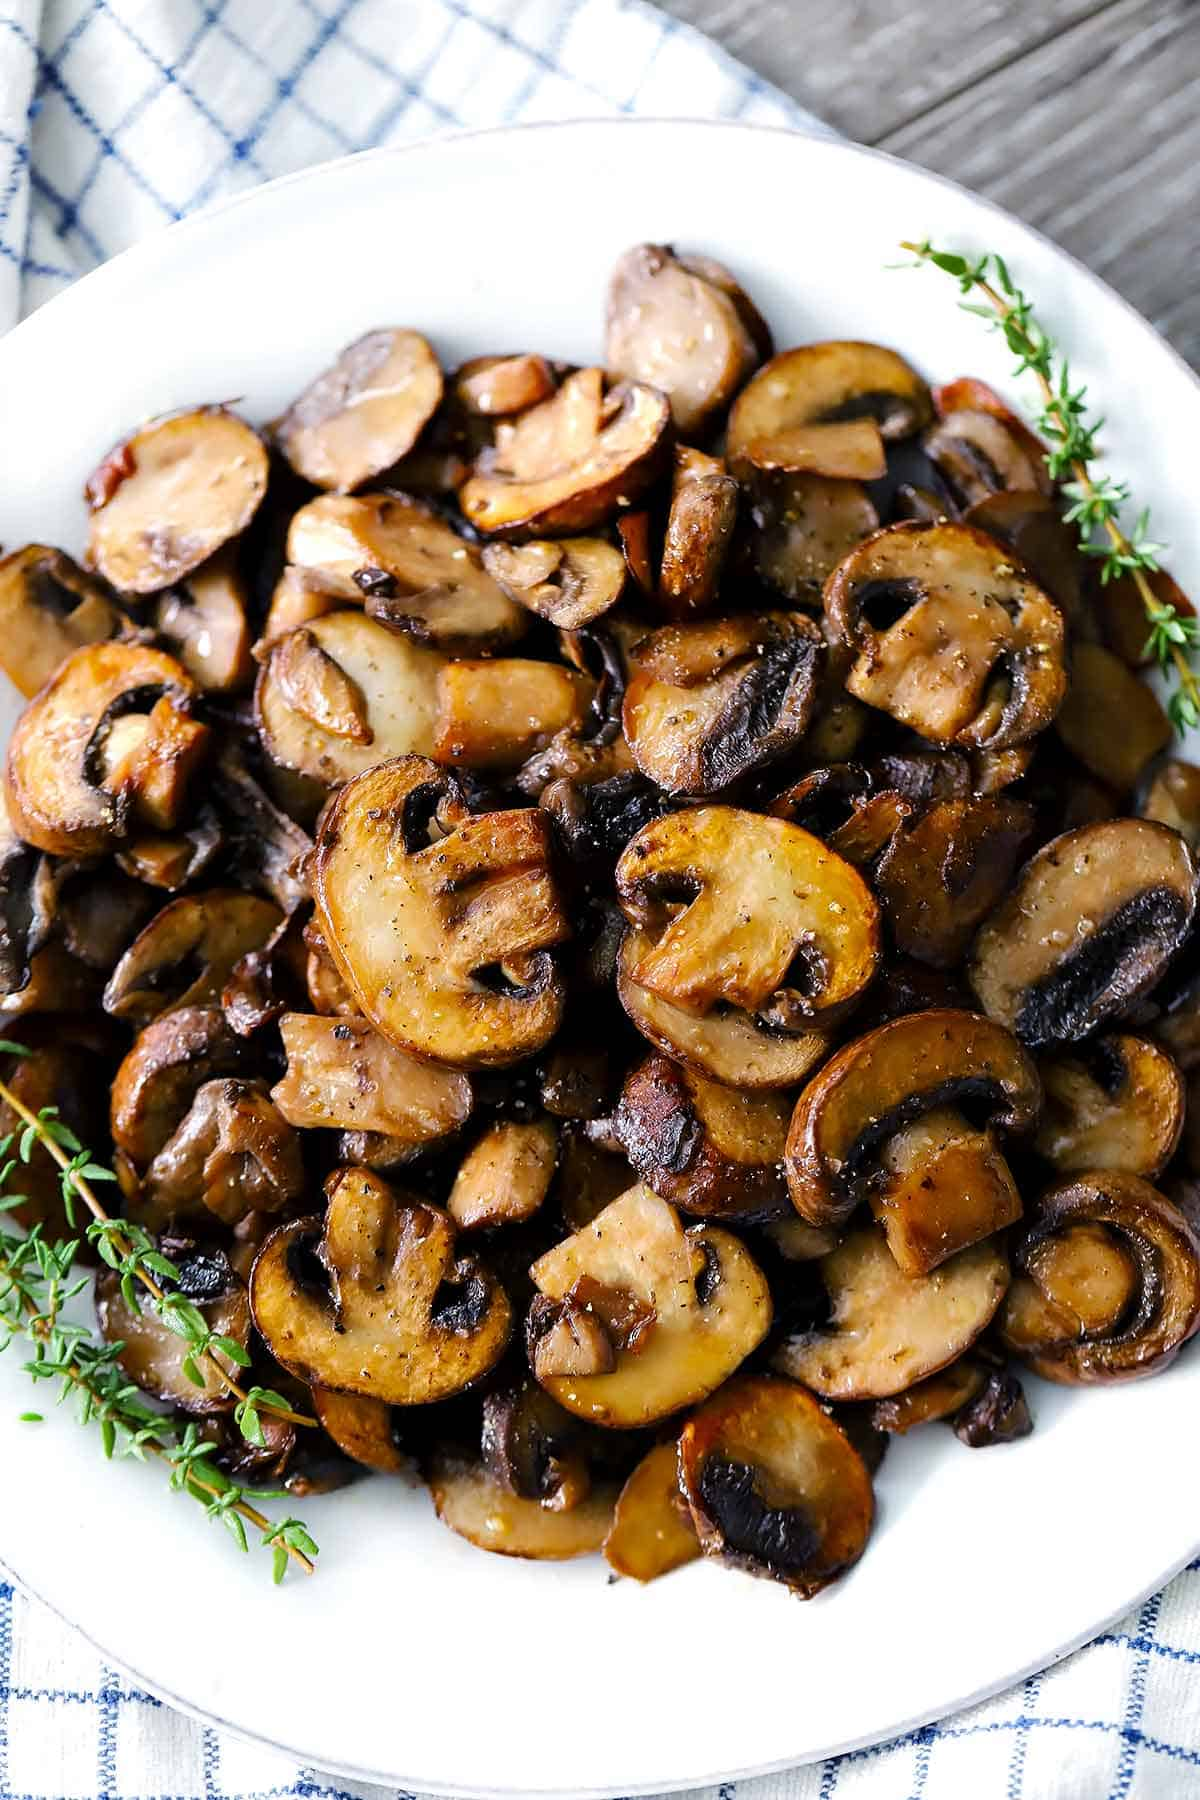 A white plate with sautéed mushrooms and sprigs of thyme.